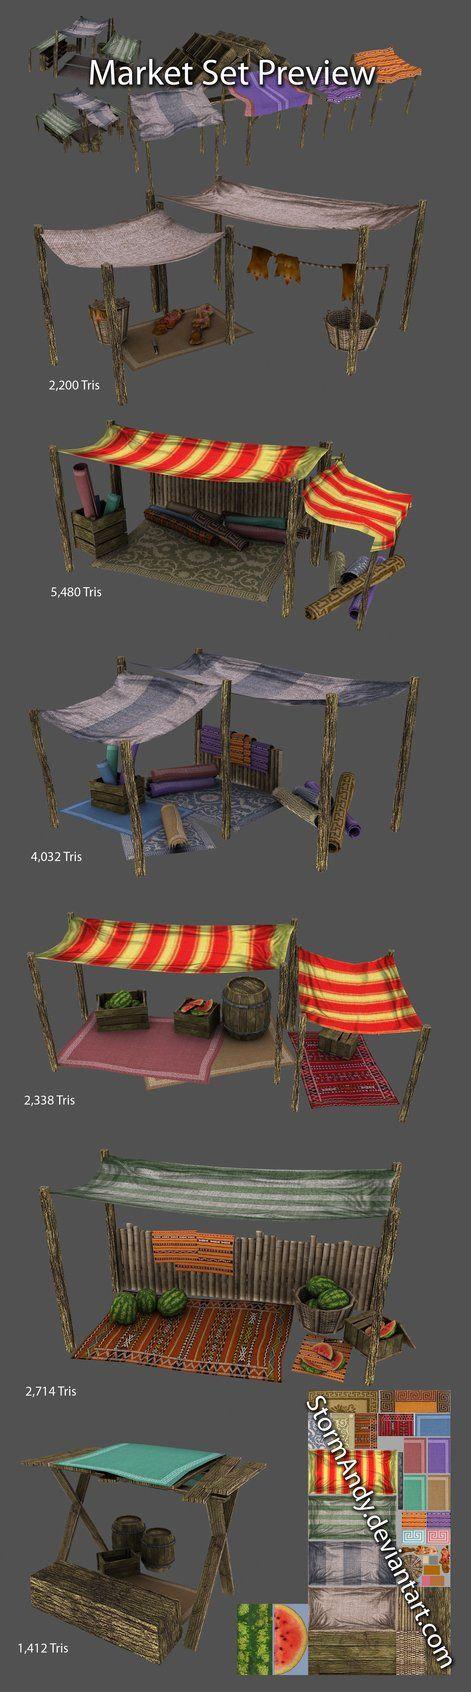 Market Stalls - Preview by StormAndy on deviantART